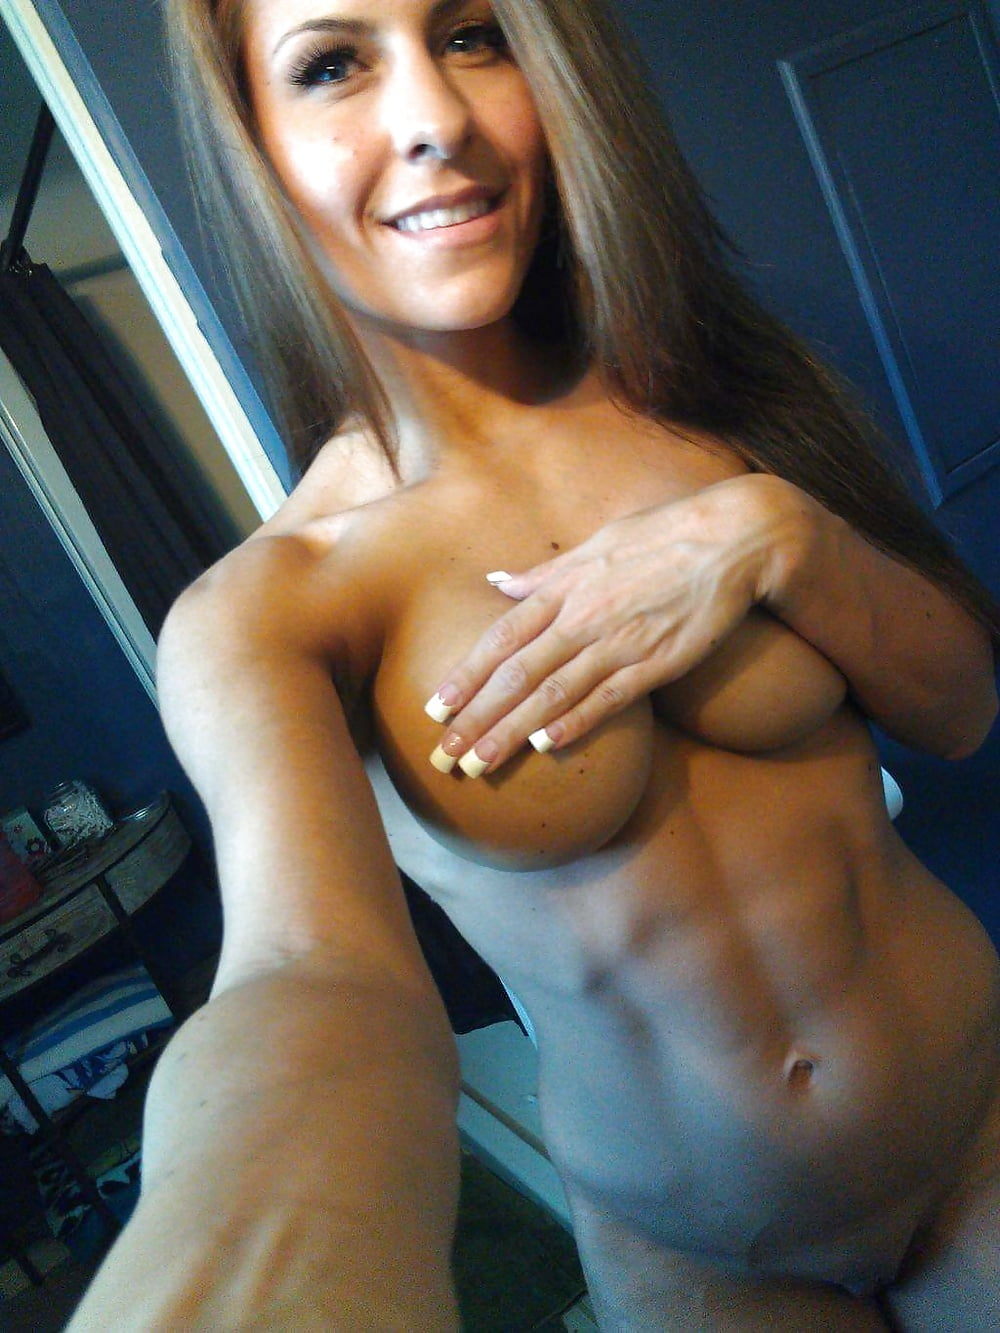 Hot Sexy Fit Women Nude